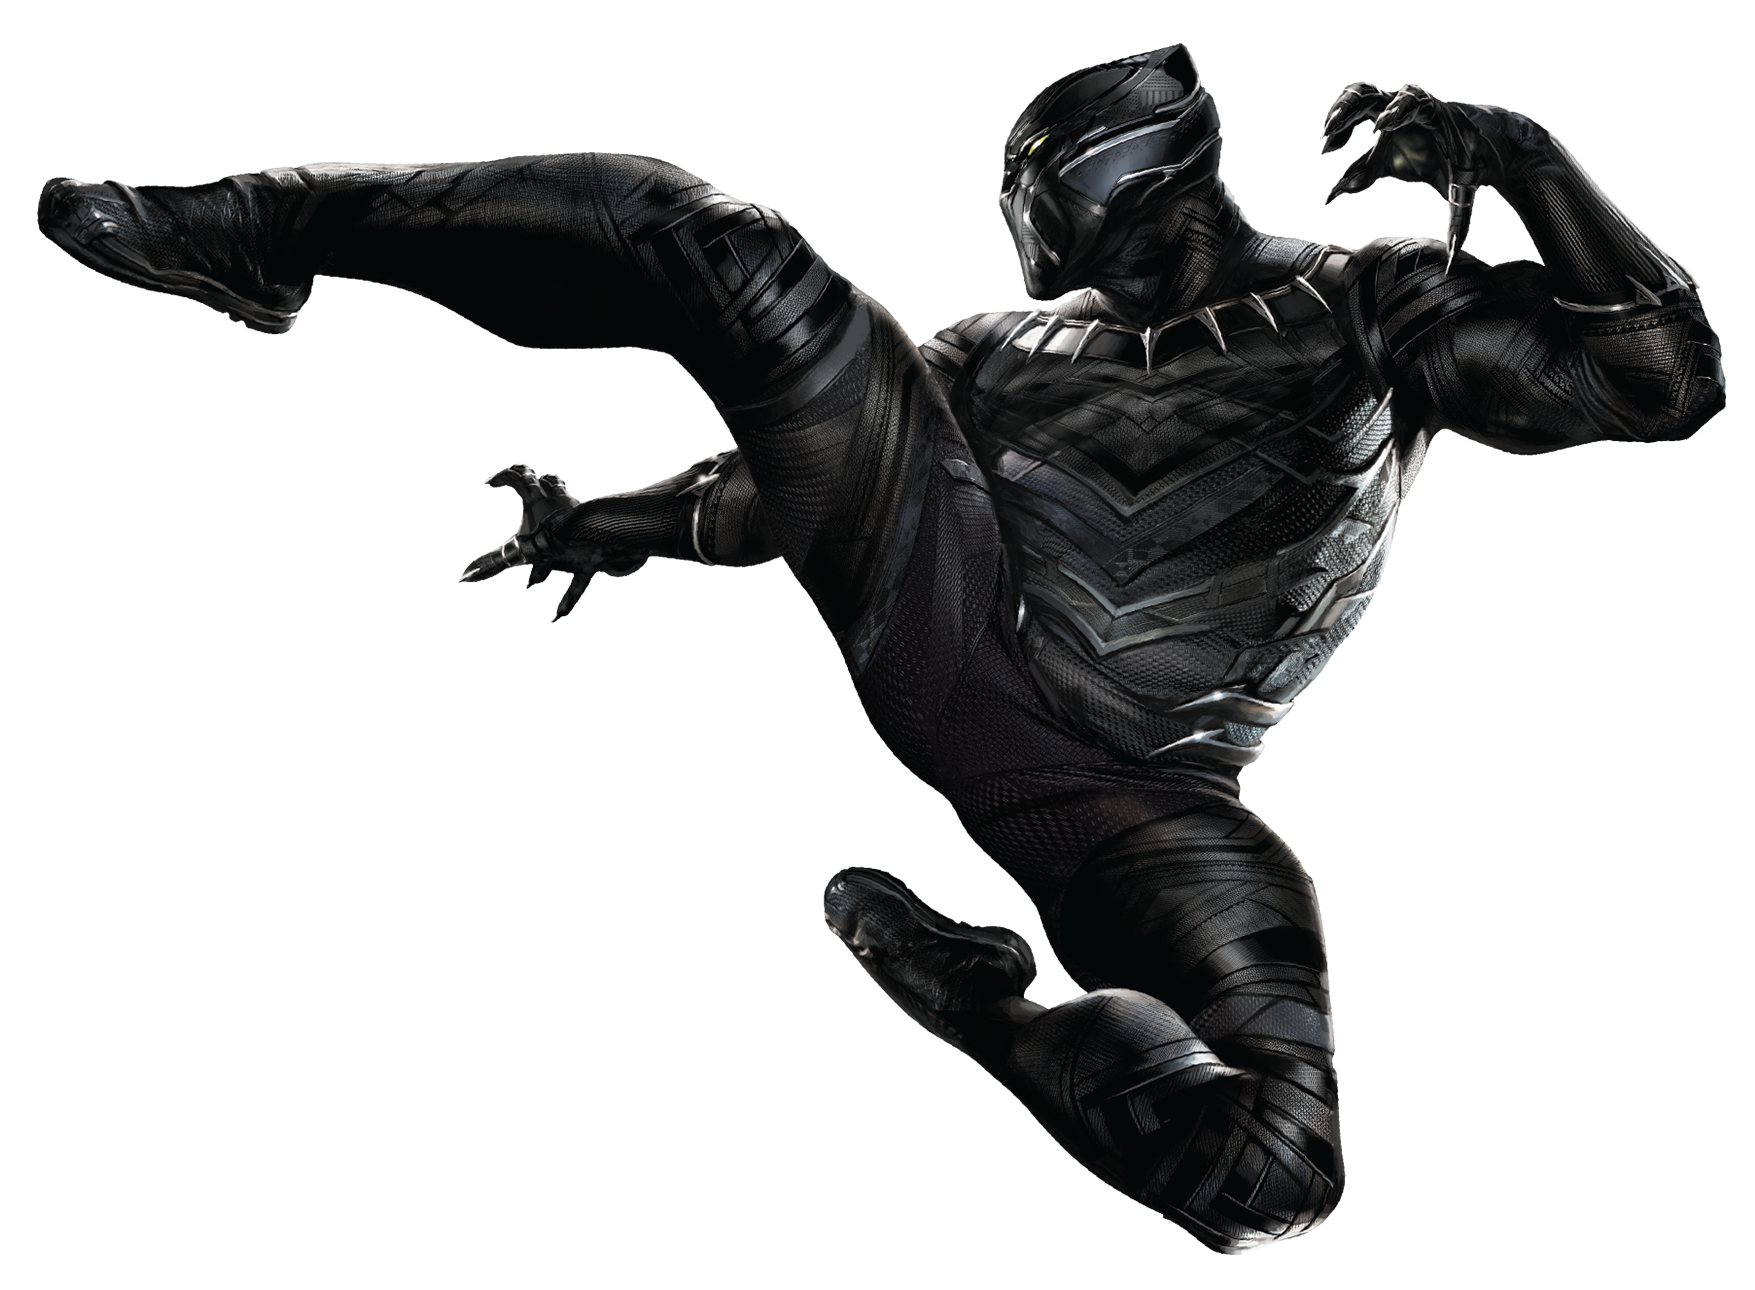 Image - CW Panther Kick Render.png | Marvel Cinematic Universe Wiki |  FANDOM powered by Wikia - Black Panther PNG